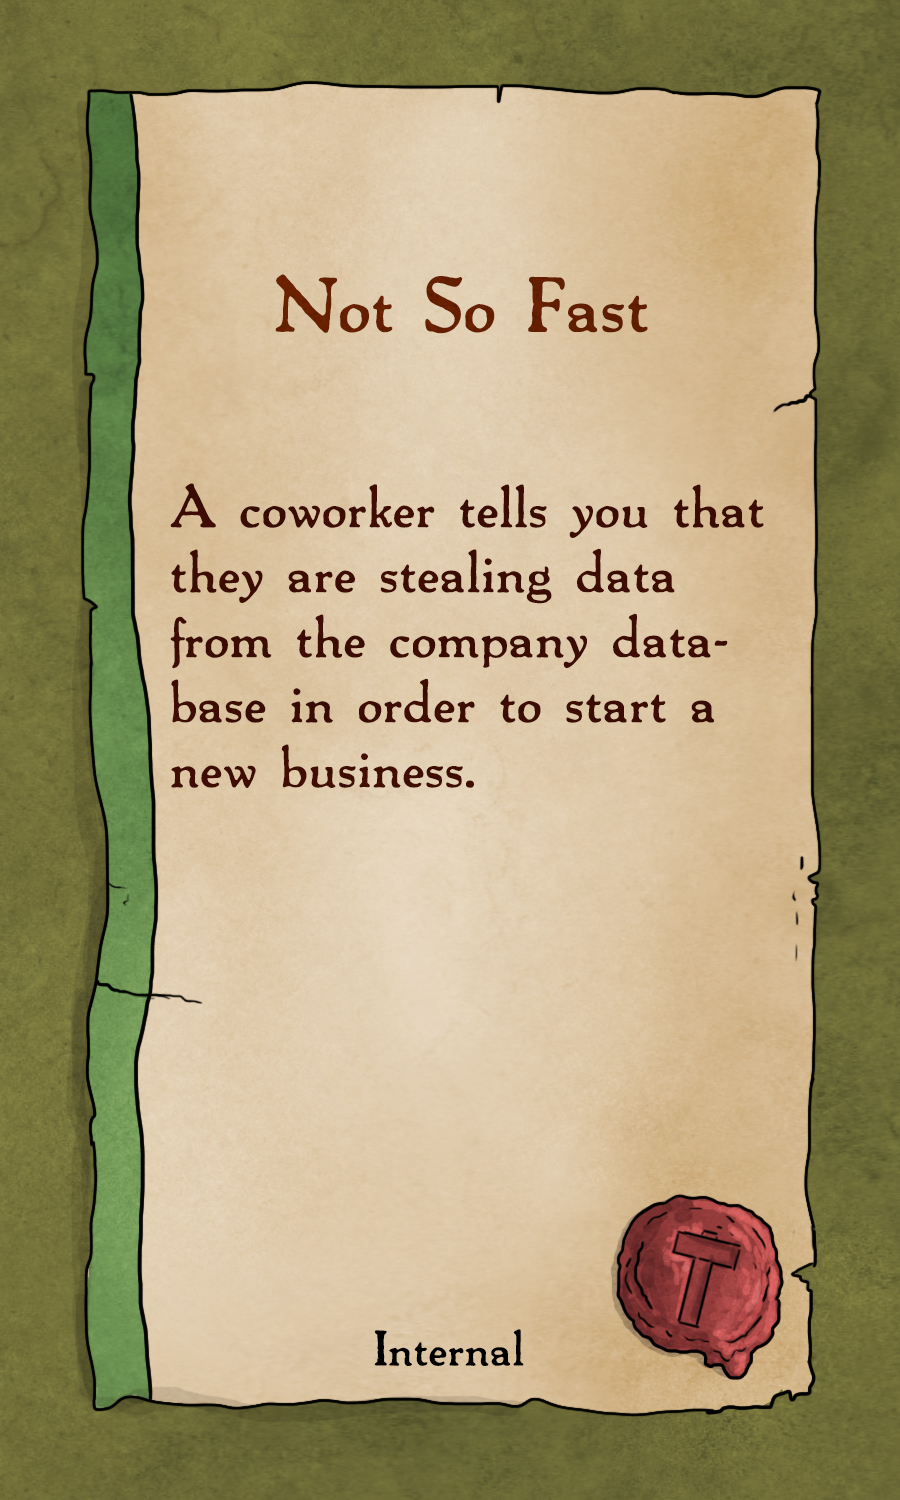 Event Cards:    Of the hundreds of Event cards included in the game, ones like this test your recruiters knowledge of company policy and the right procedure to follow. How would you handle this situation?